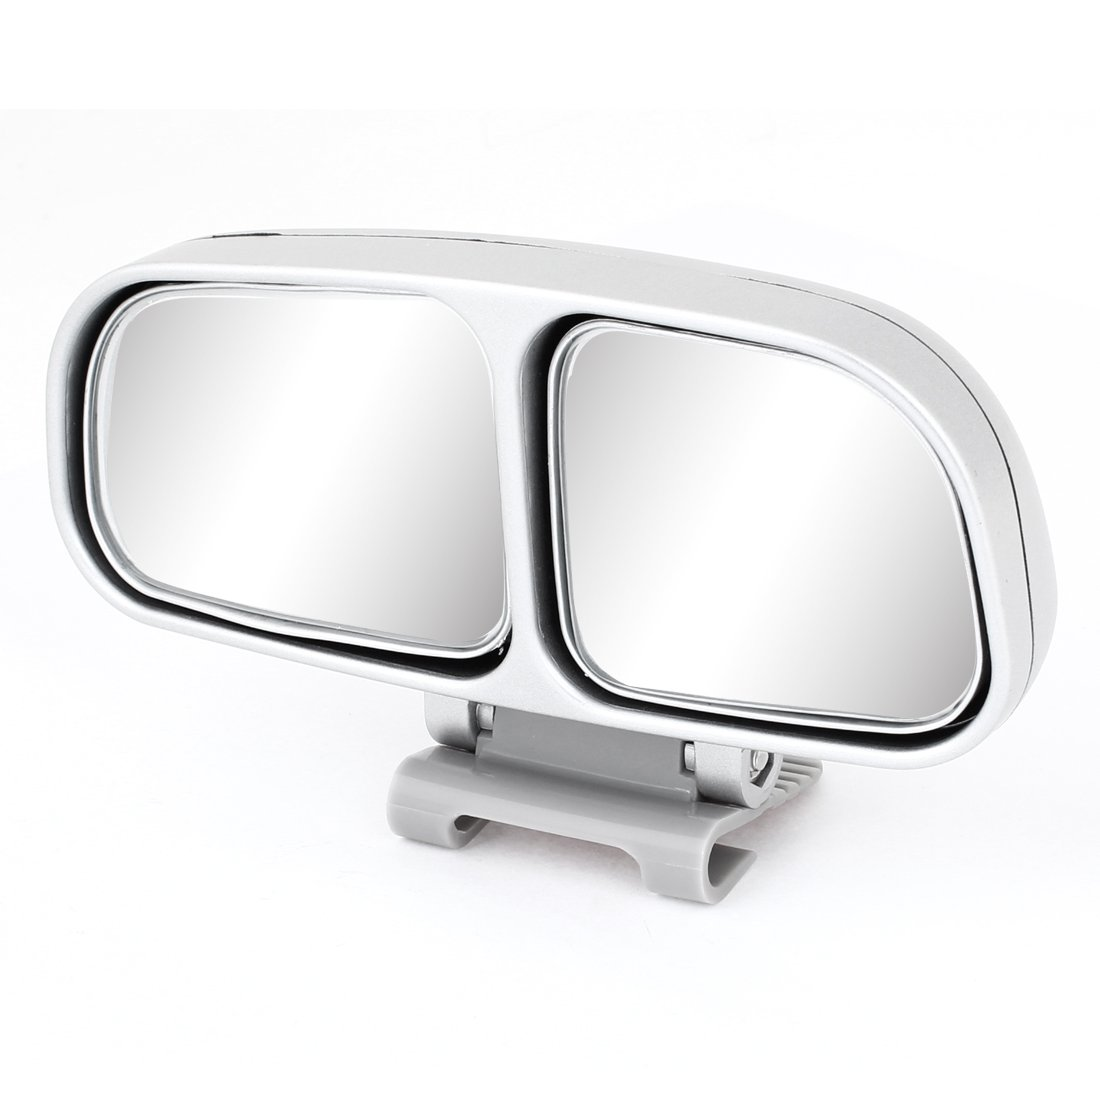 Auto Car Gray Plastic Adhesive Tape Left Blind Spot Parking Rearview Mirror